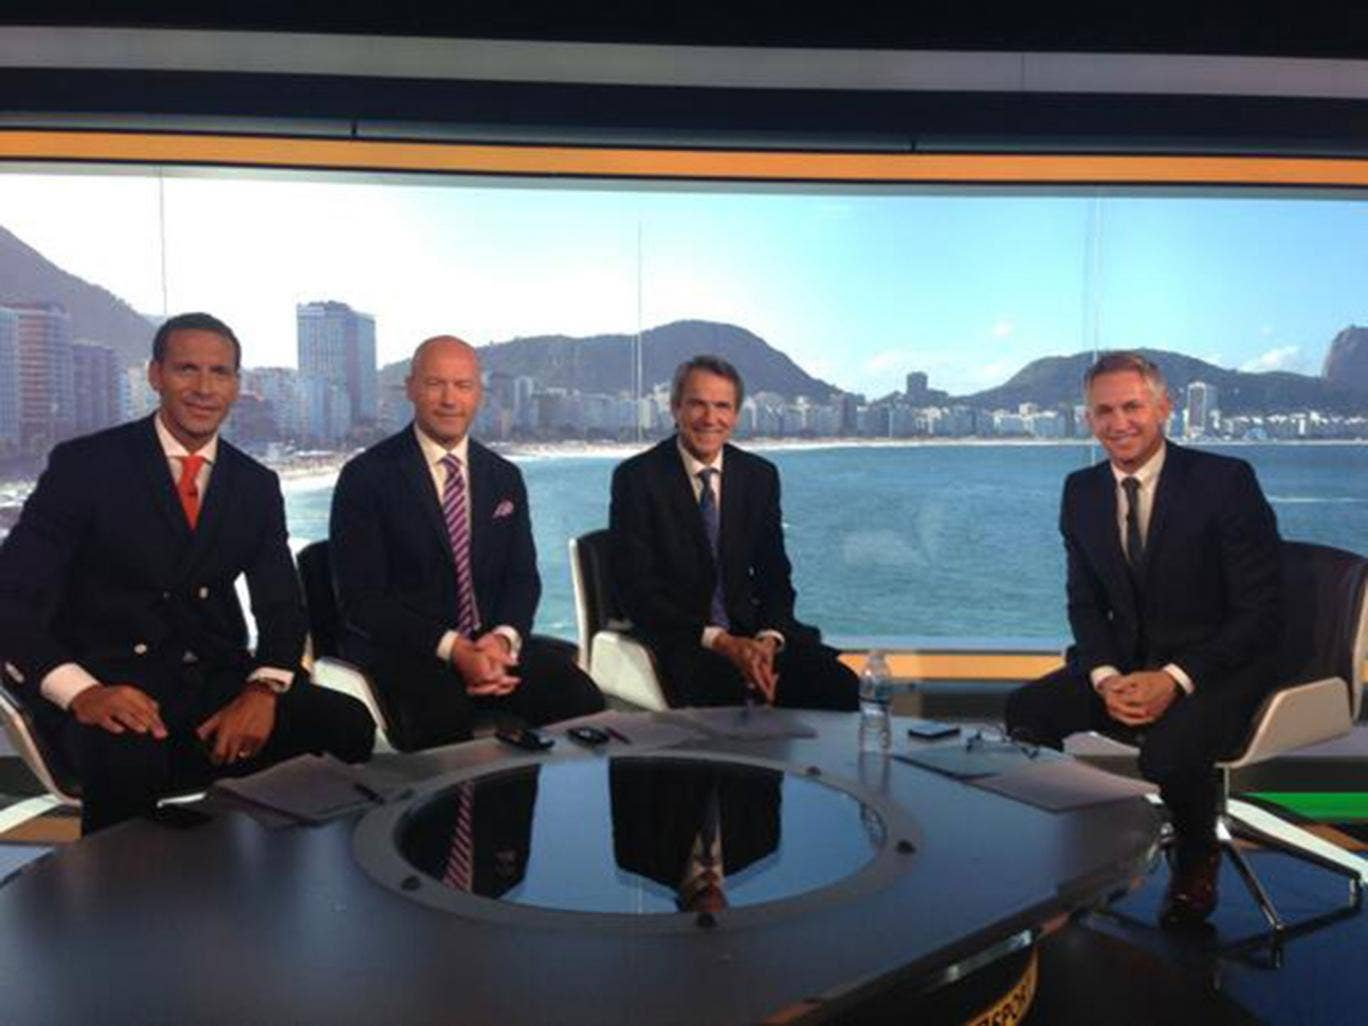 Rio Ferdinand, Alan Shearer, Alan Hansen and Gary Lineker during Hansen's final broadcast